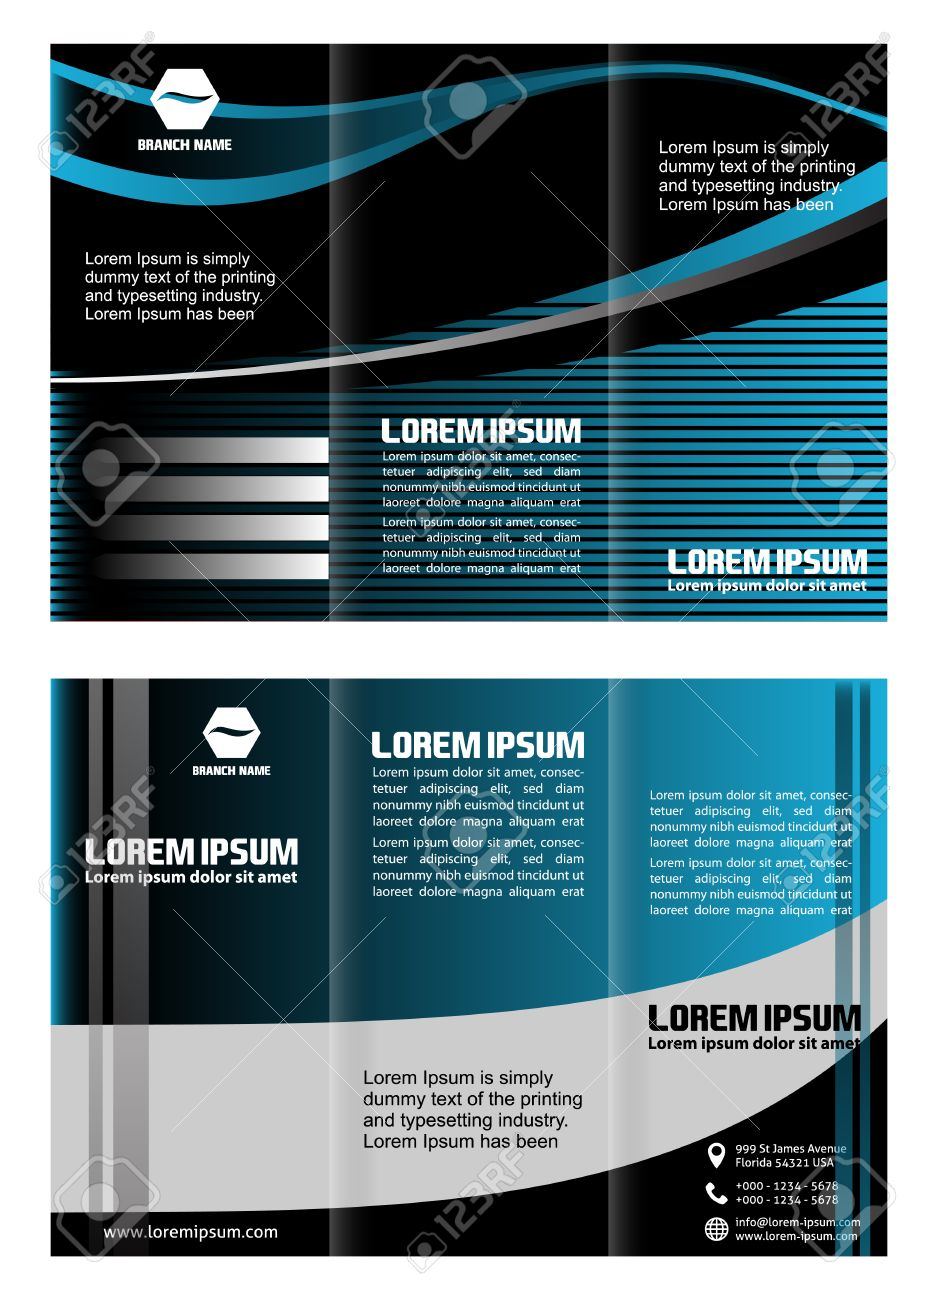 Trifold Technology Style Brochure Layout Design Template Royalty - Technology brochure template